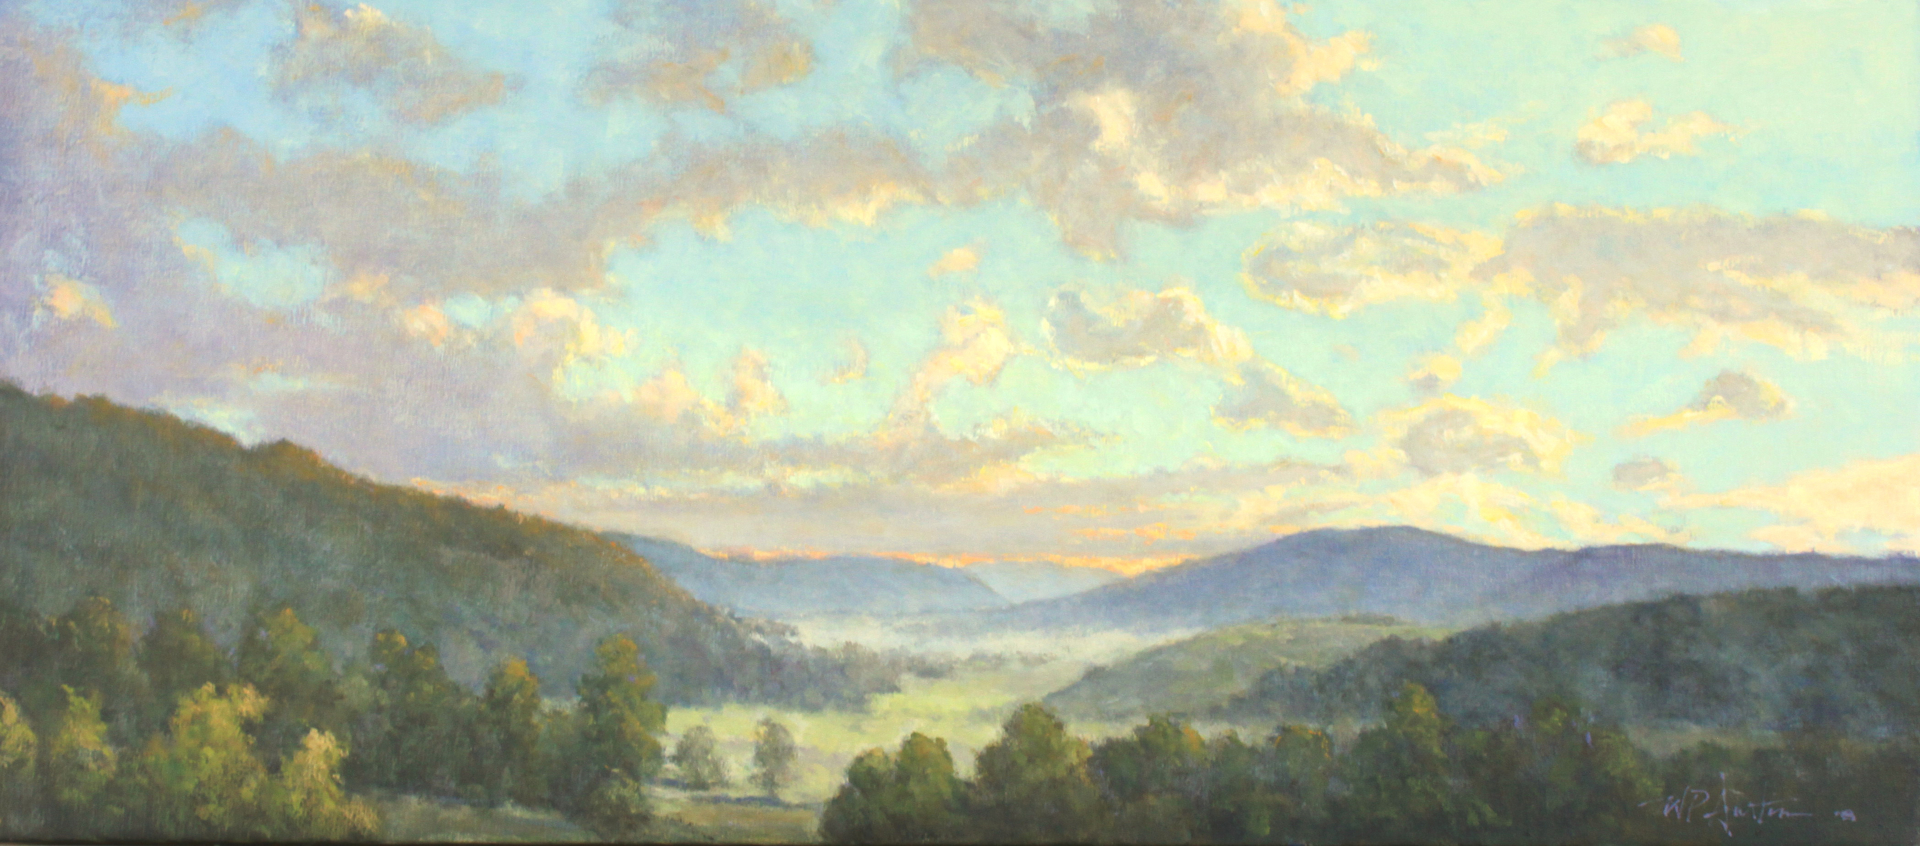 Valley Mist by Perry Austin